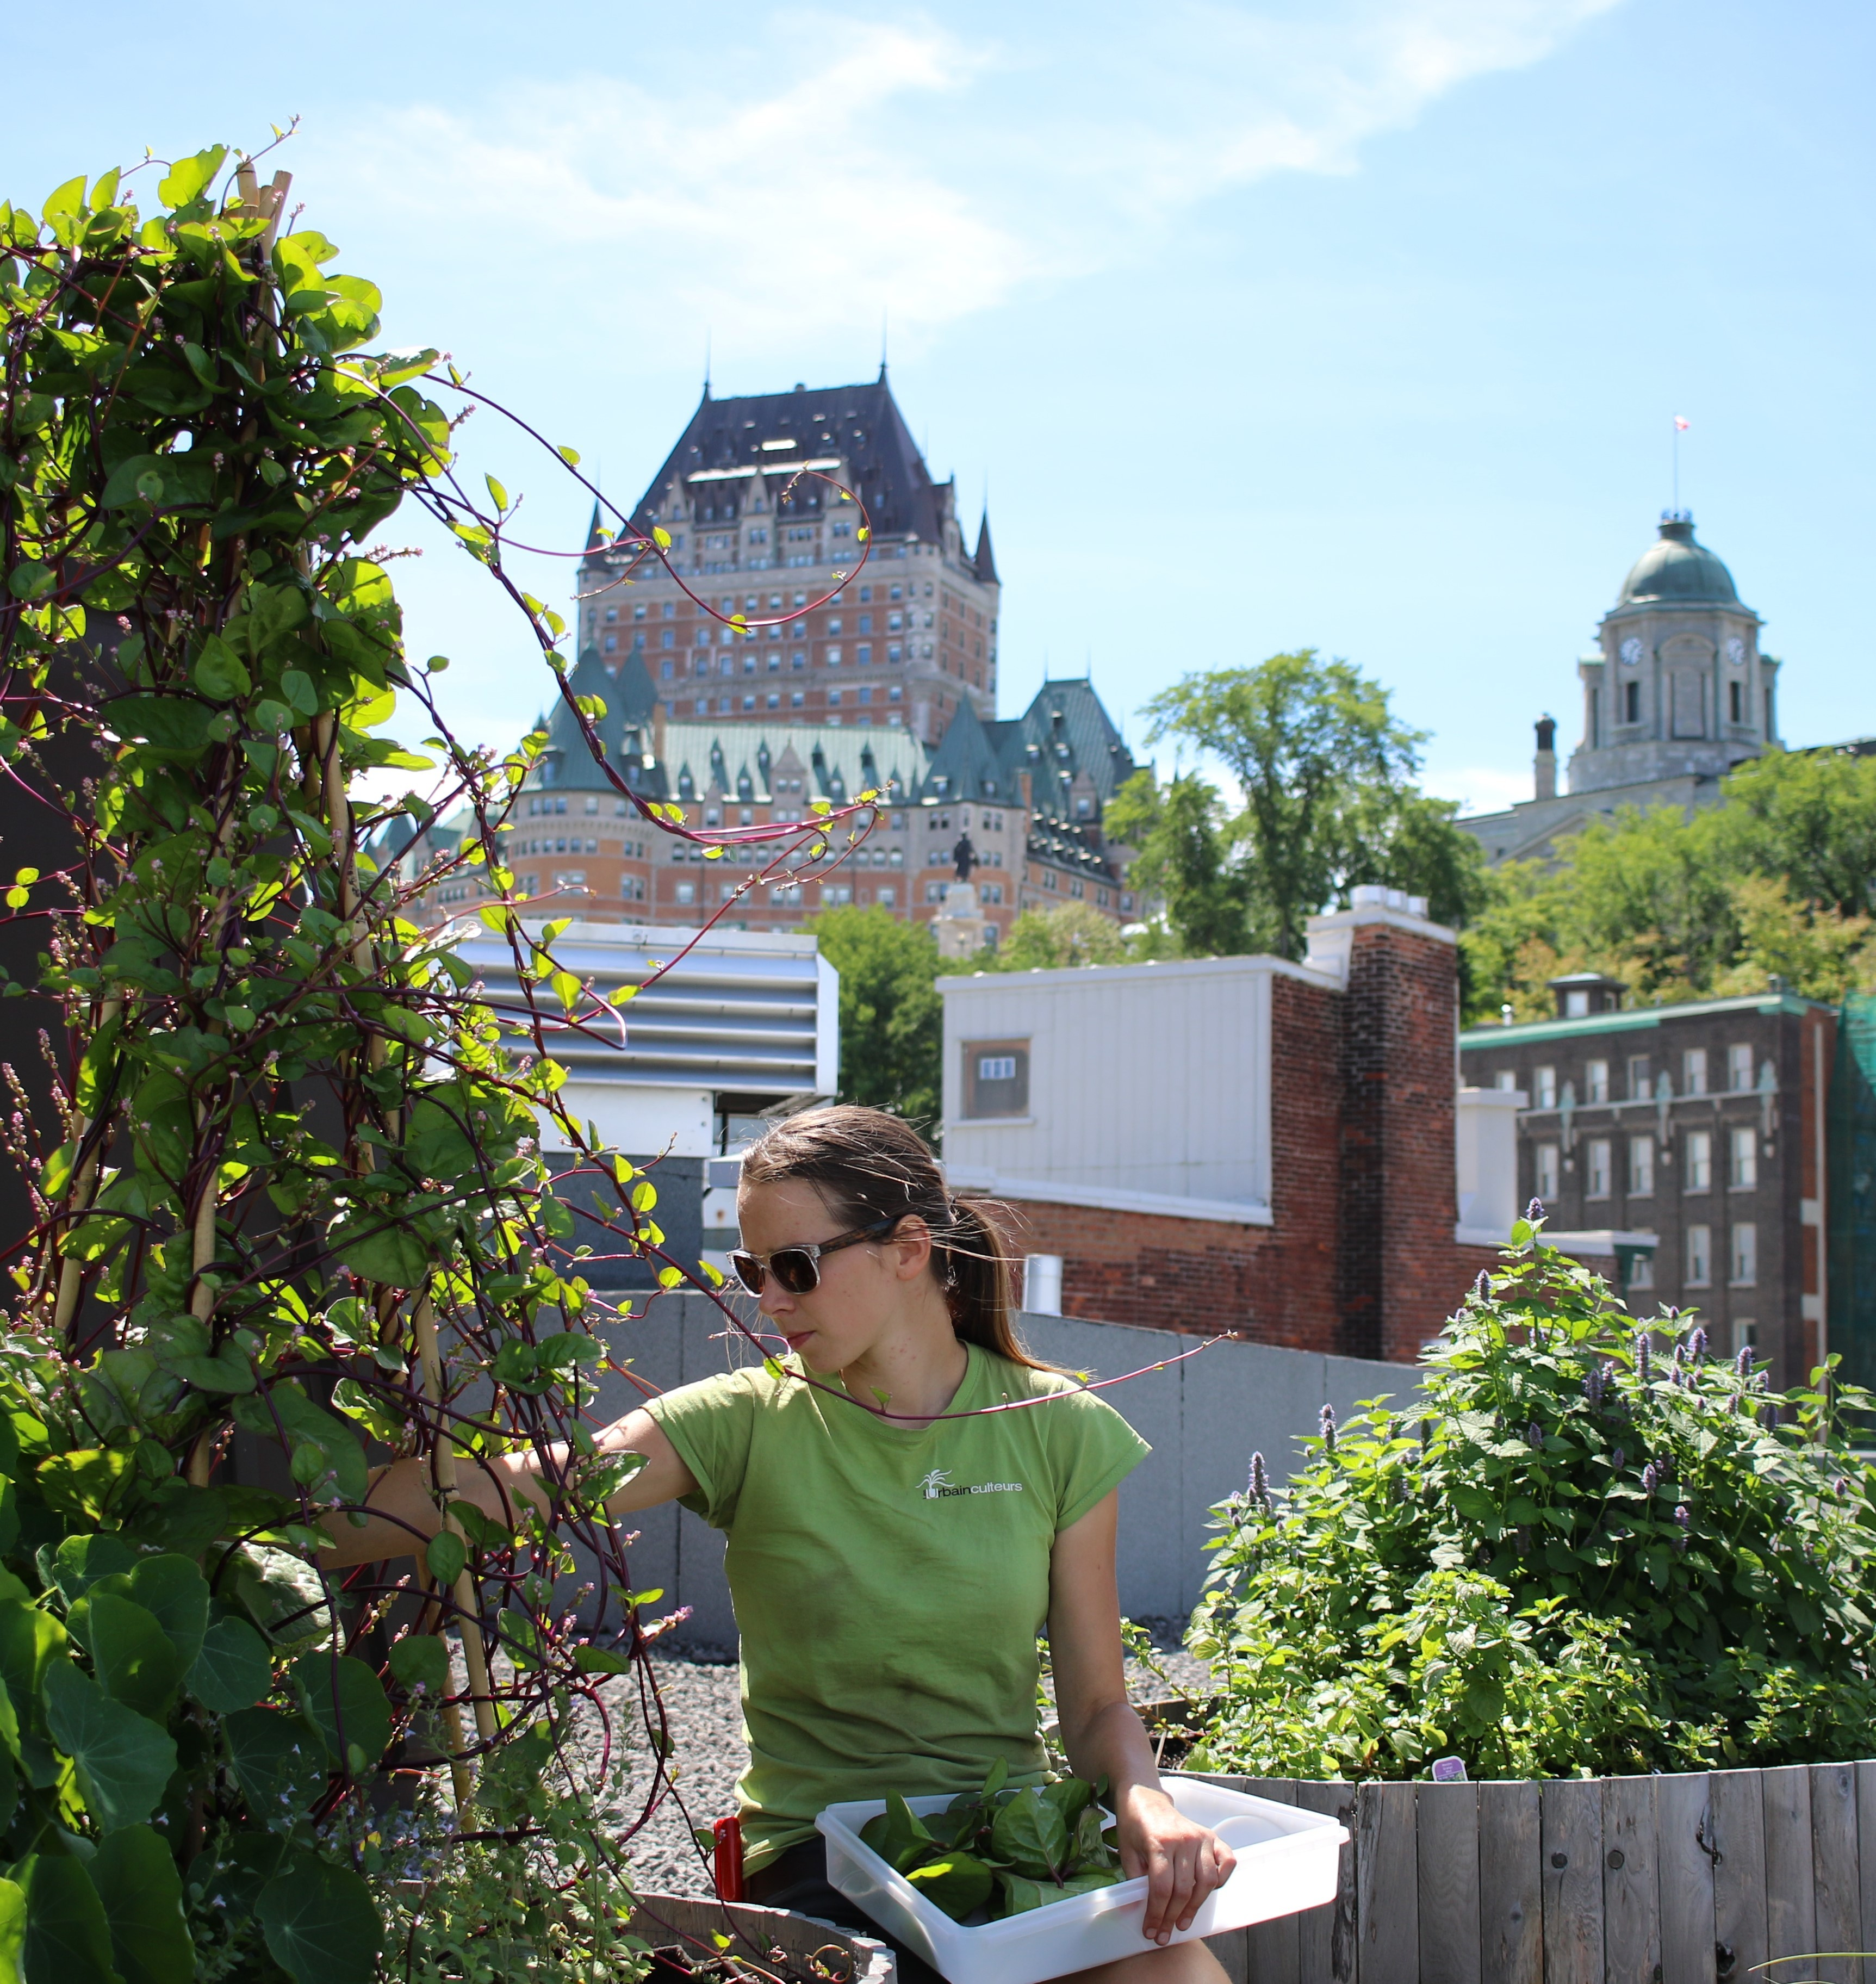 Harvesting spinach on the rooftop of Auberge St-Antoine, view on Château Frontenac